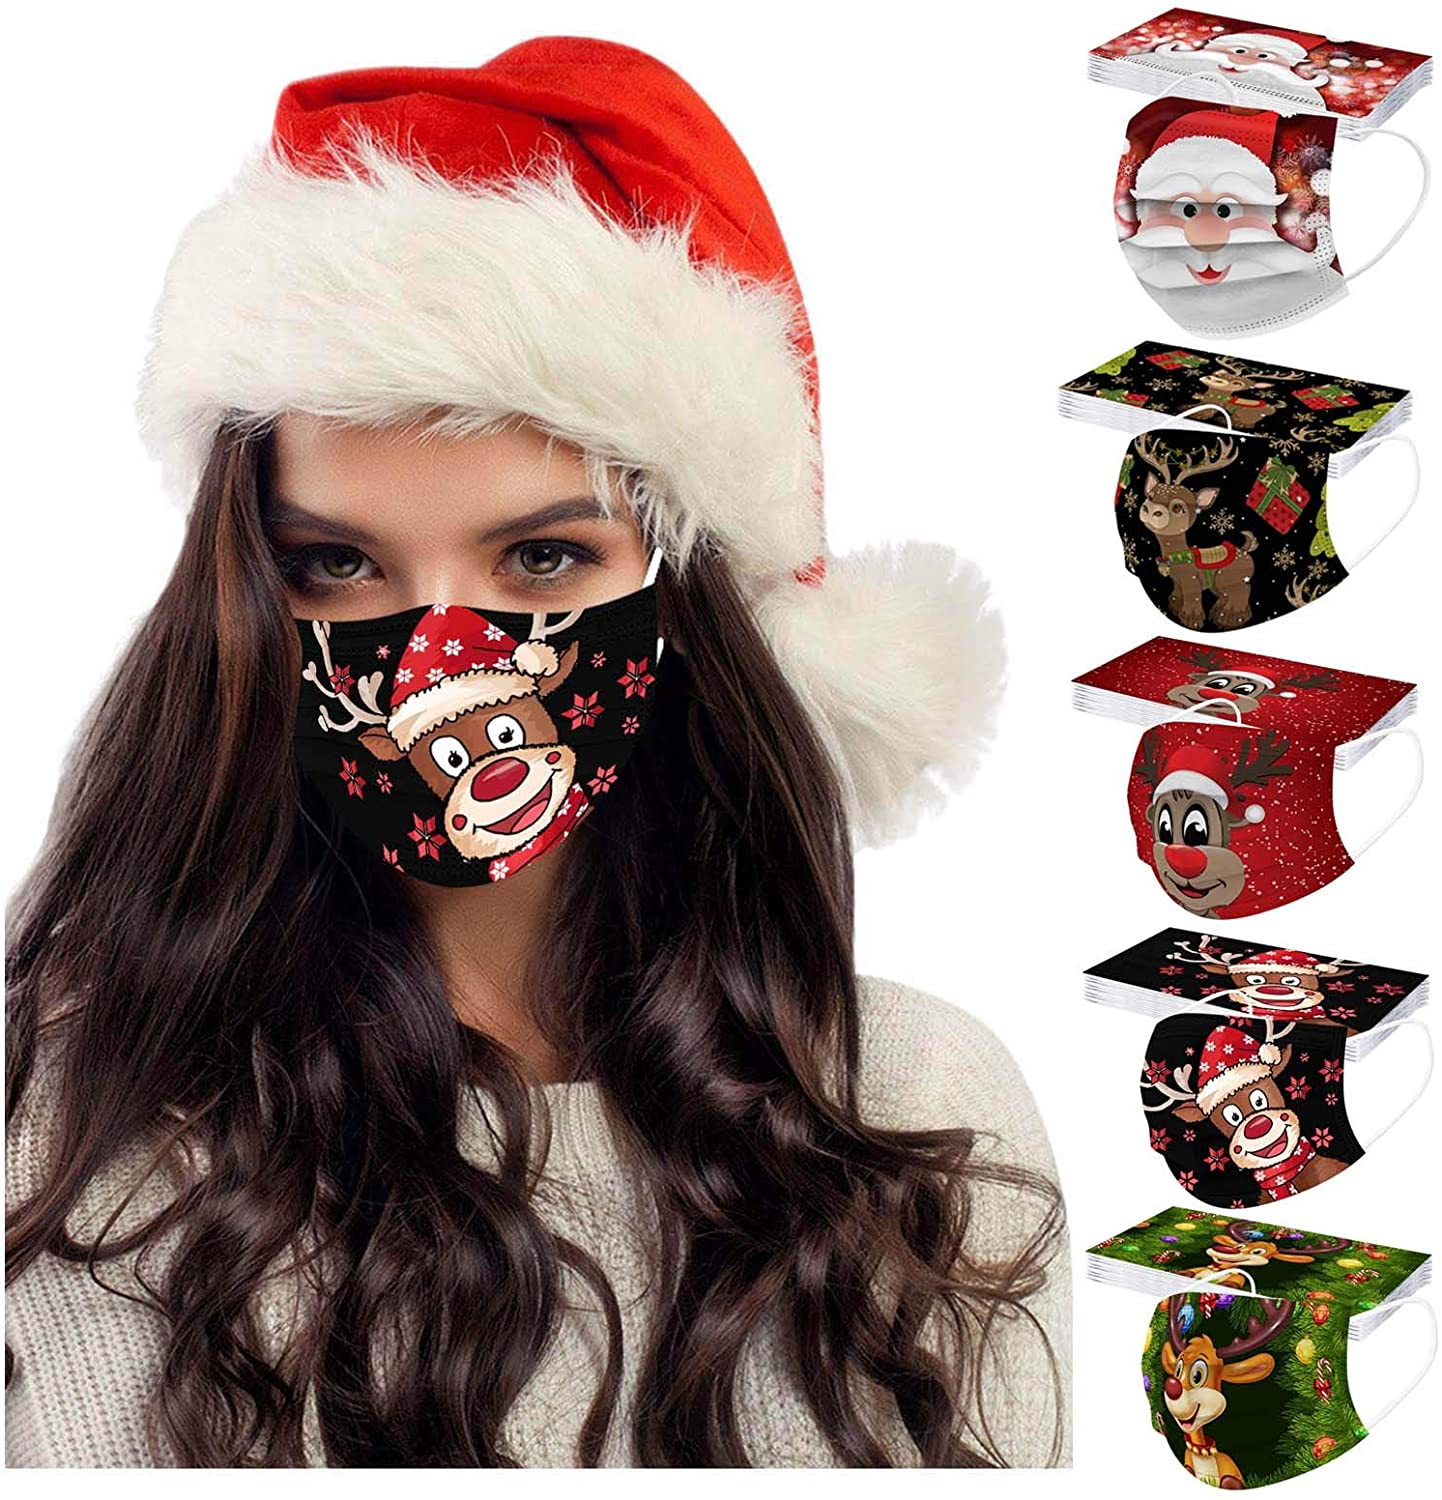 50Pcs Christmas Themed Disposable with Elastic Earloops for Adults,Multiple Pattern Combinations 3-ply for Party,High Filtration and Ventilation (B, 5x10pcs)